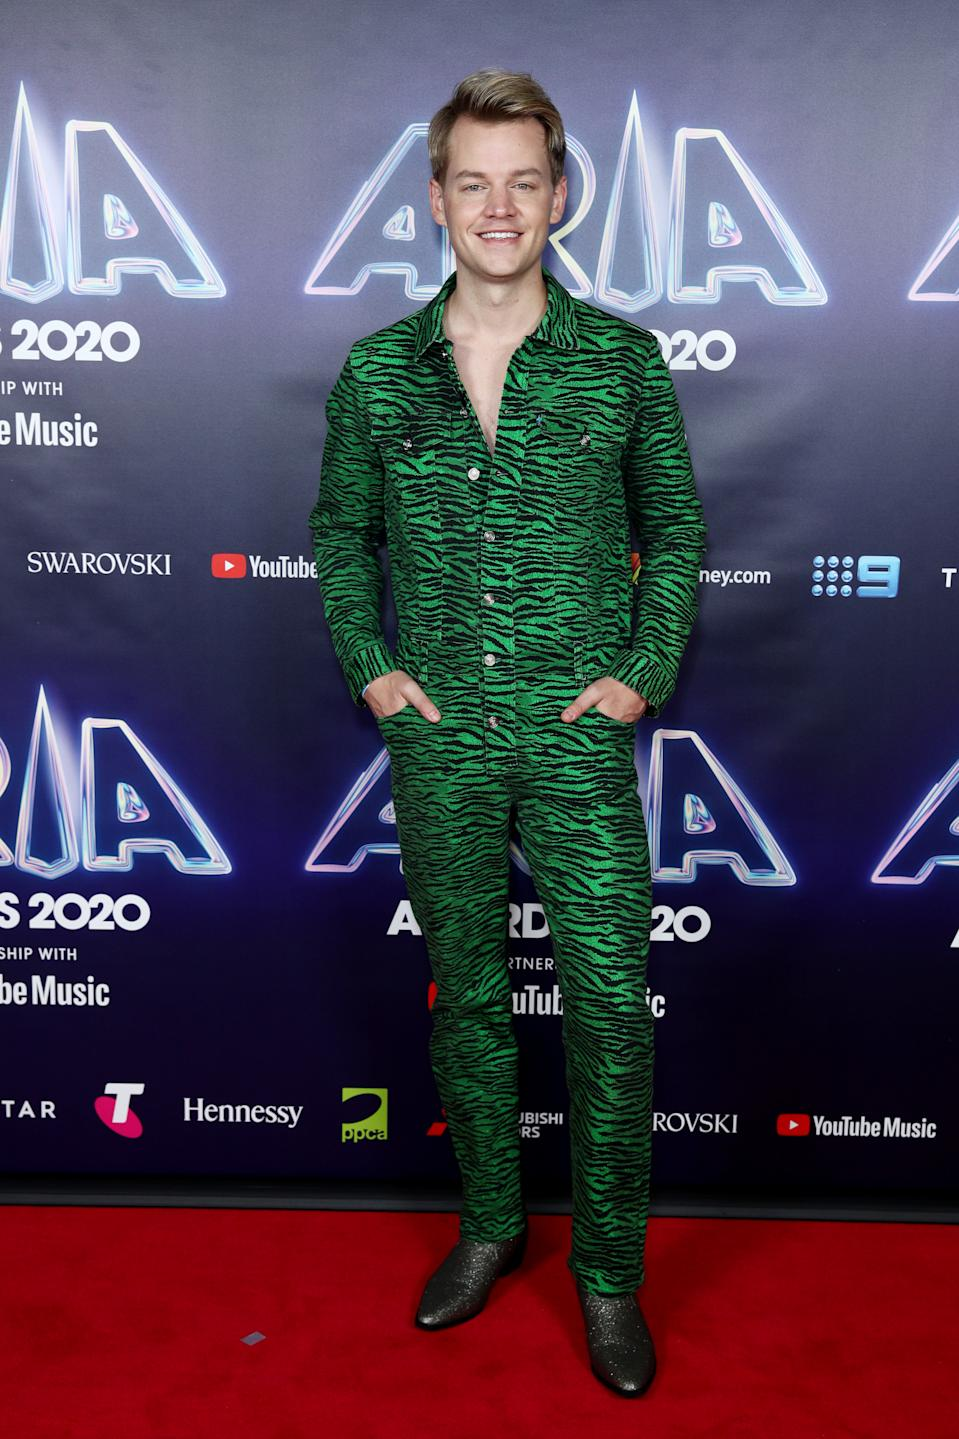 Joel Creasey wears a green zebra print boiler-suit by Kenzo on the red carpet at the 2020 ARIA Awards at The Star on November 24, 2020 in Sydney, Australia.